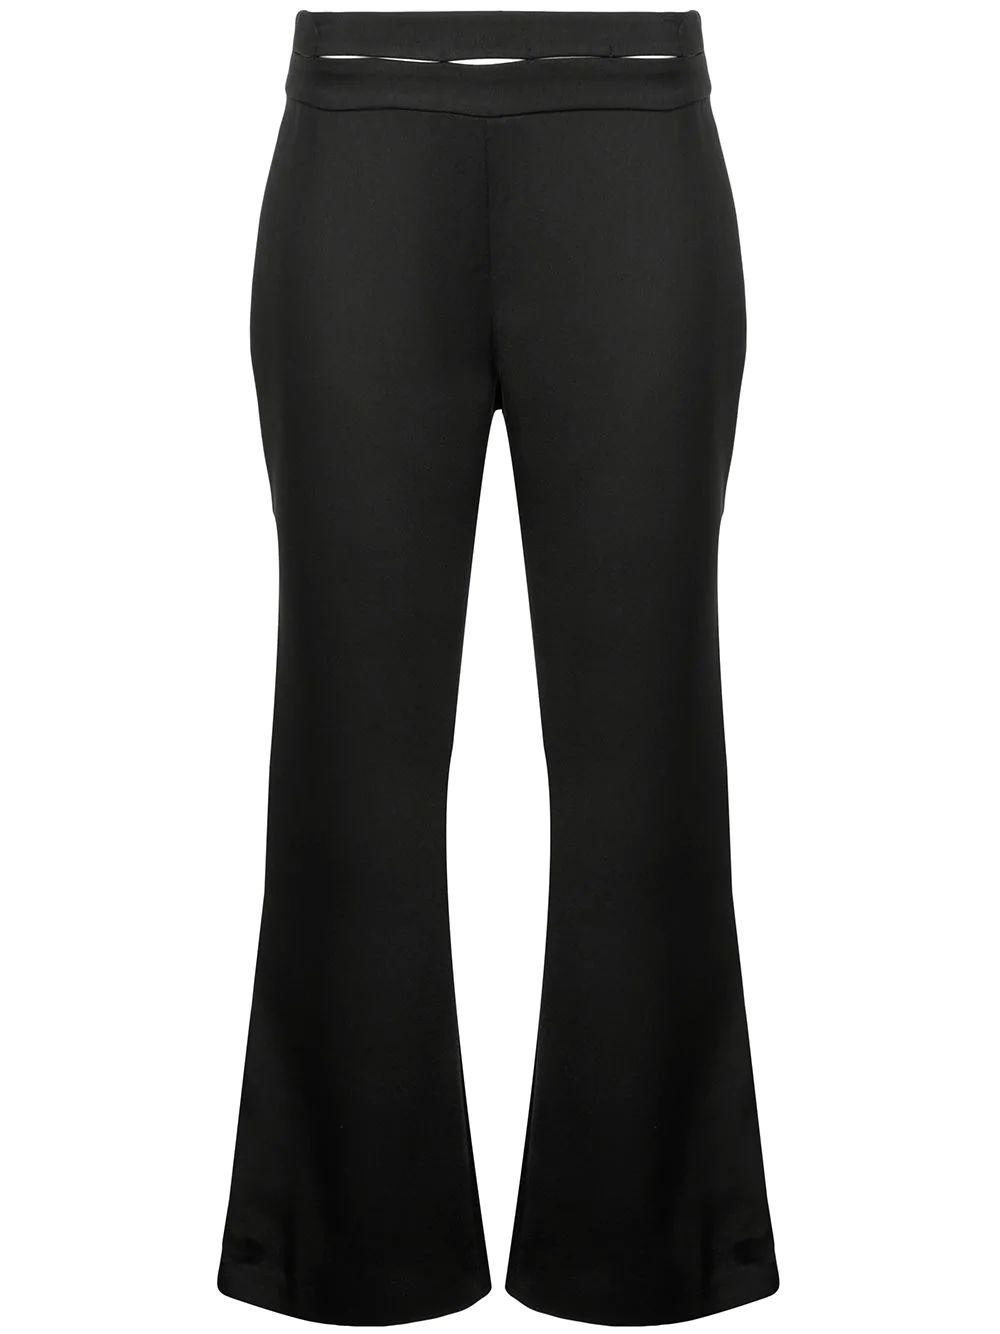 Nadira Crop High Waist Pant Item # A21906105372